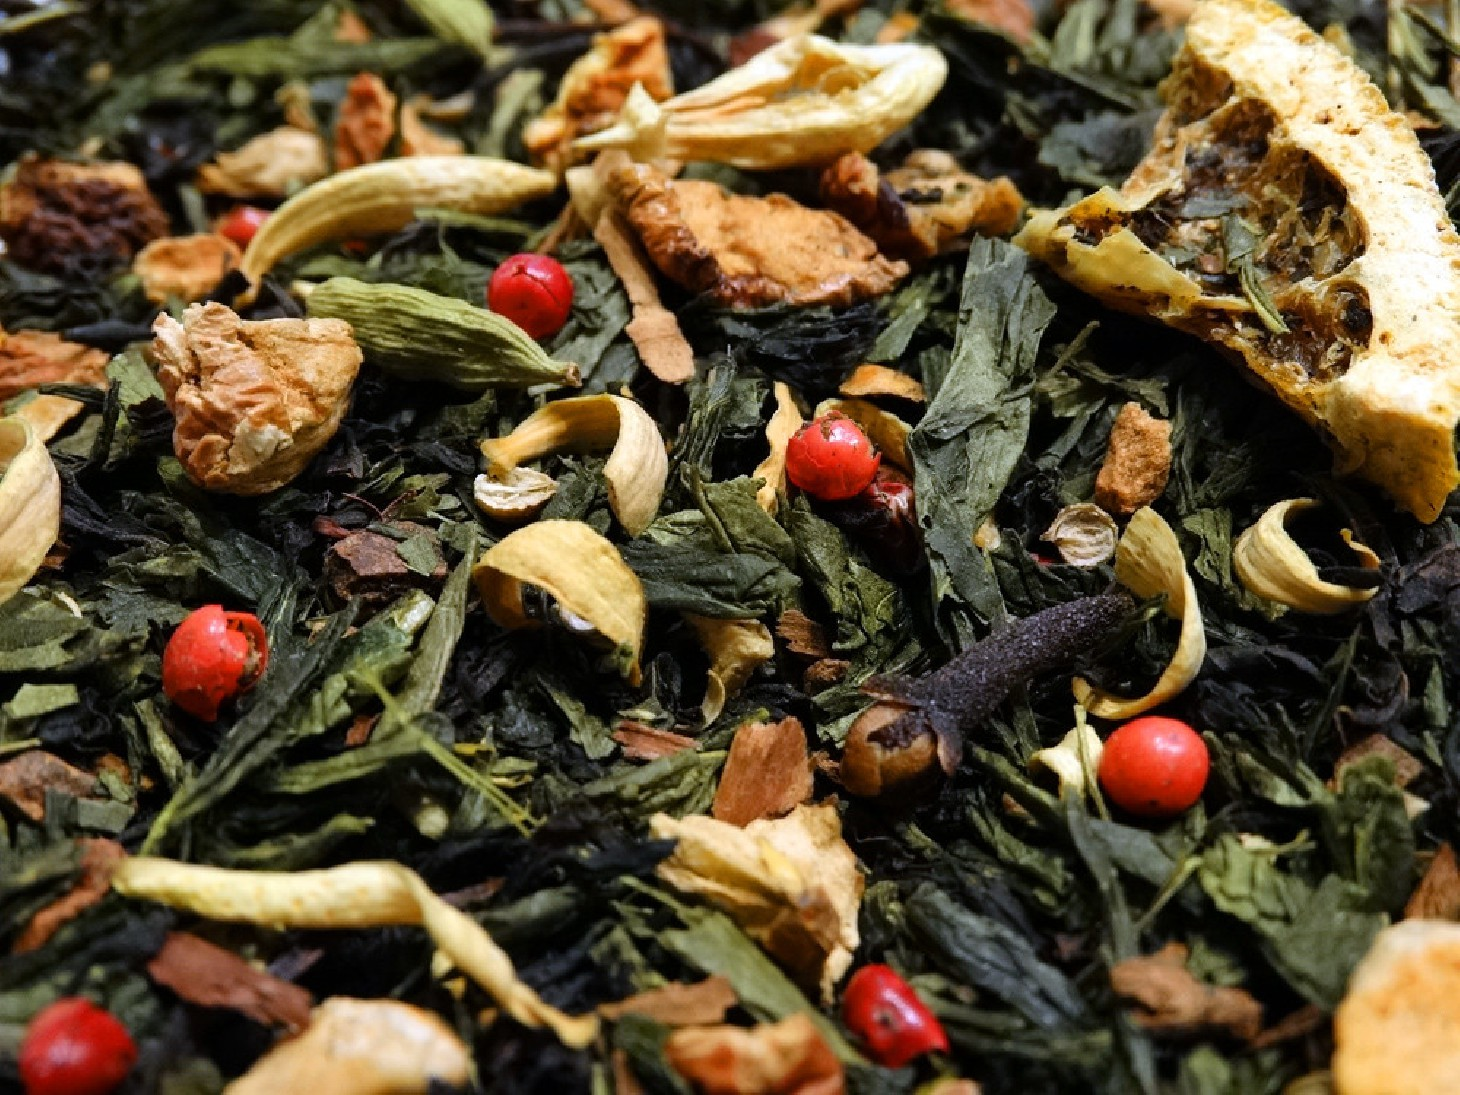 Black and green tea, bergamot, citrus fruits, spices, apple, berries